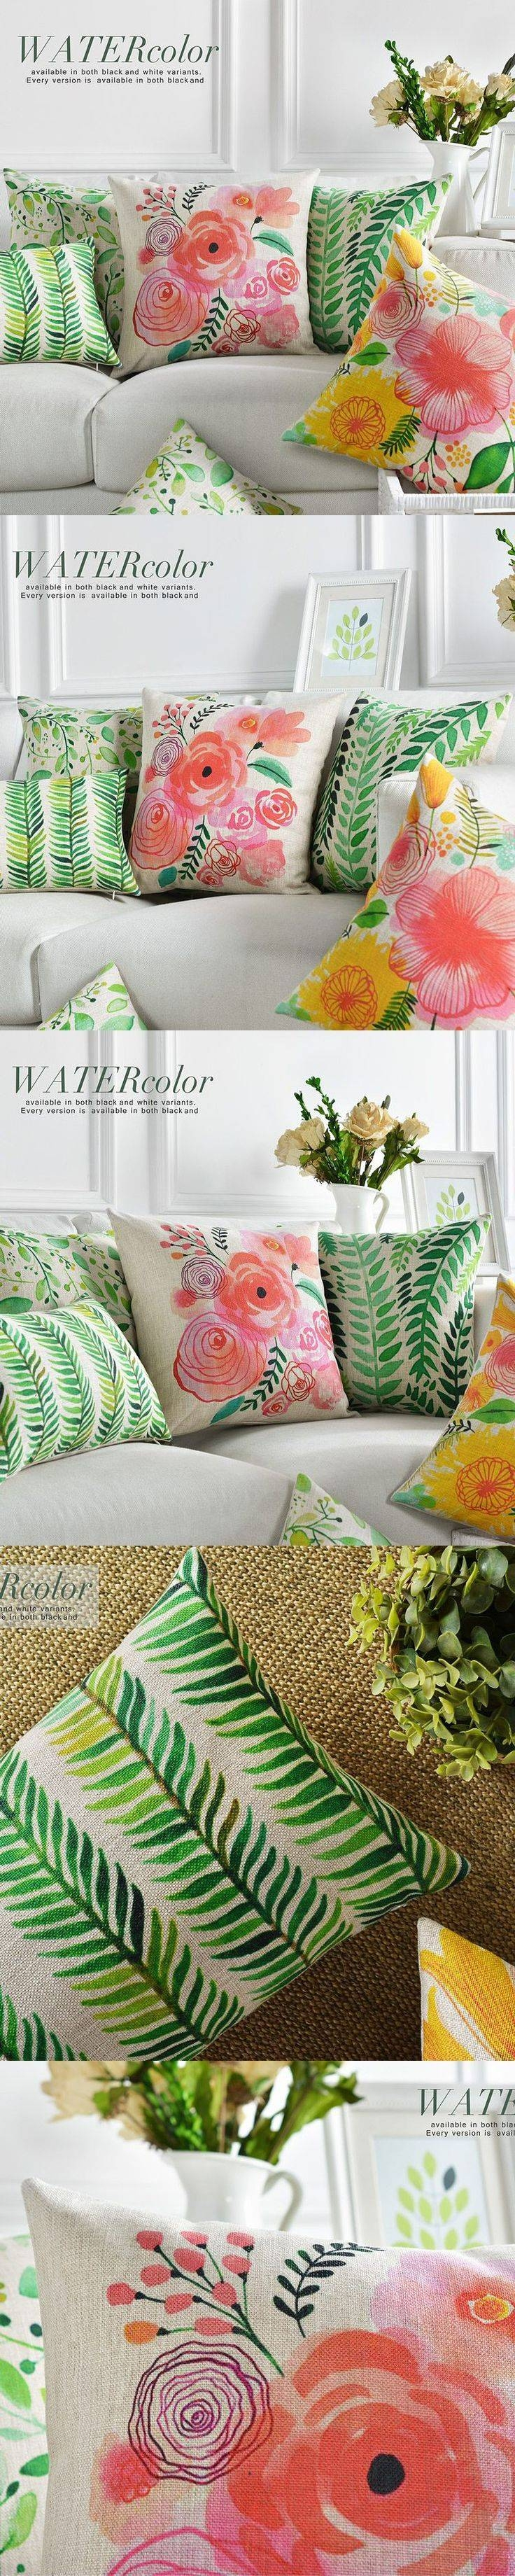 Best 25+ Floral Cushions Ideas On Pinterest | Floral Pillows pertaining to Chintz Floral Sofas (Image 12 of 30)